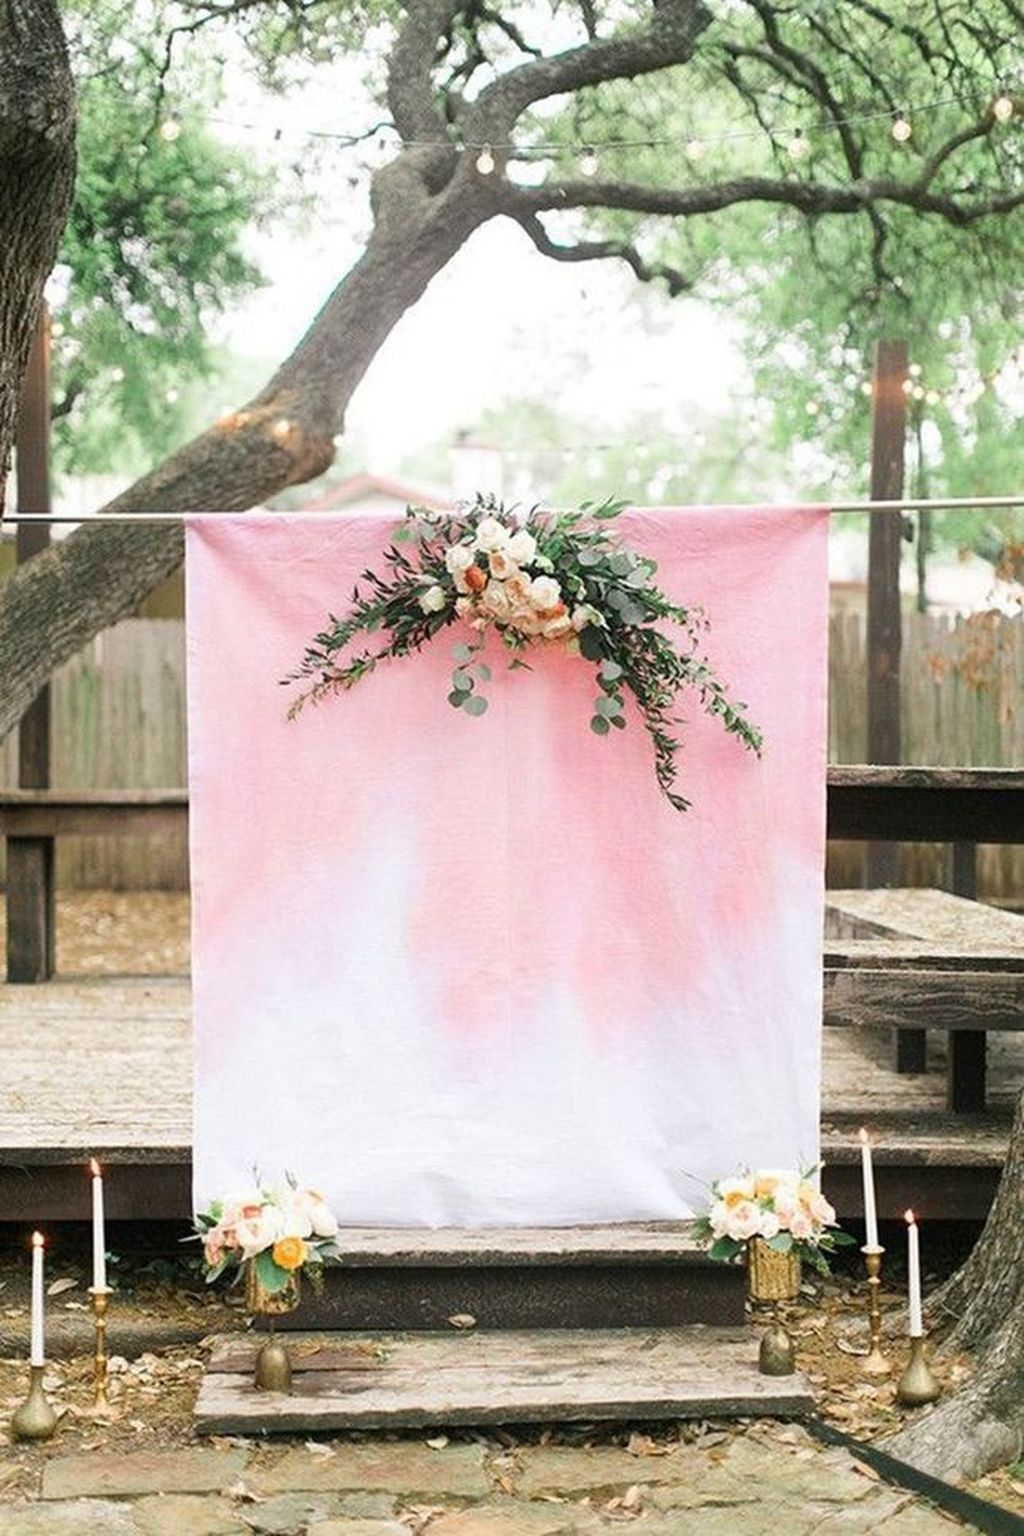 48 Sweet And Romantic Backyard Wedding Decor Ideas | Pinterest ...